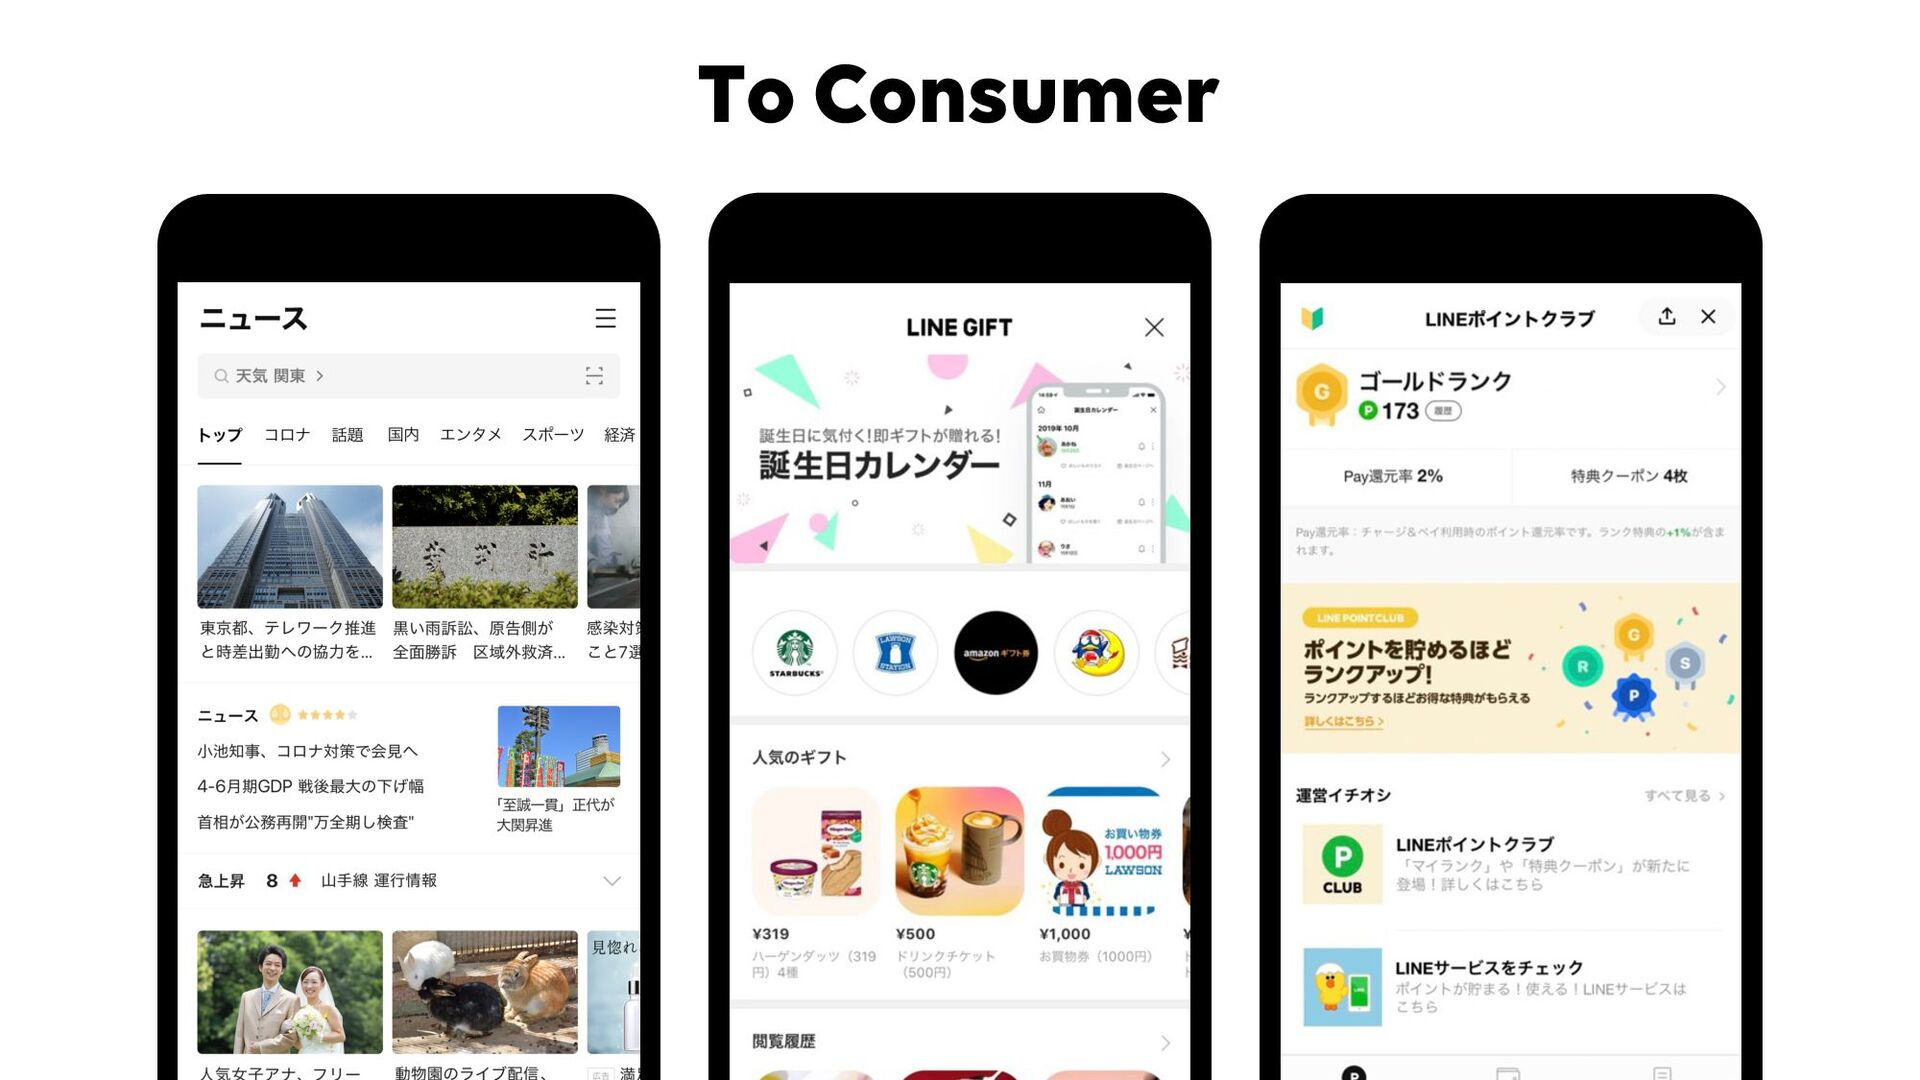 To Consumer © LINE 10